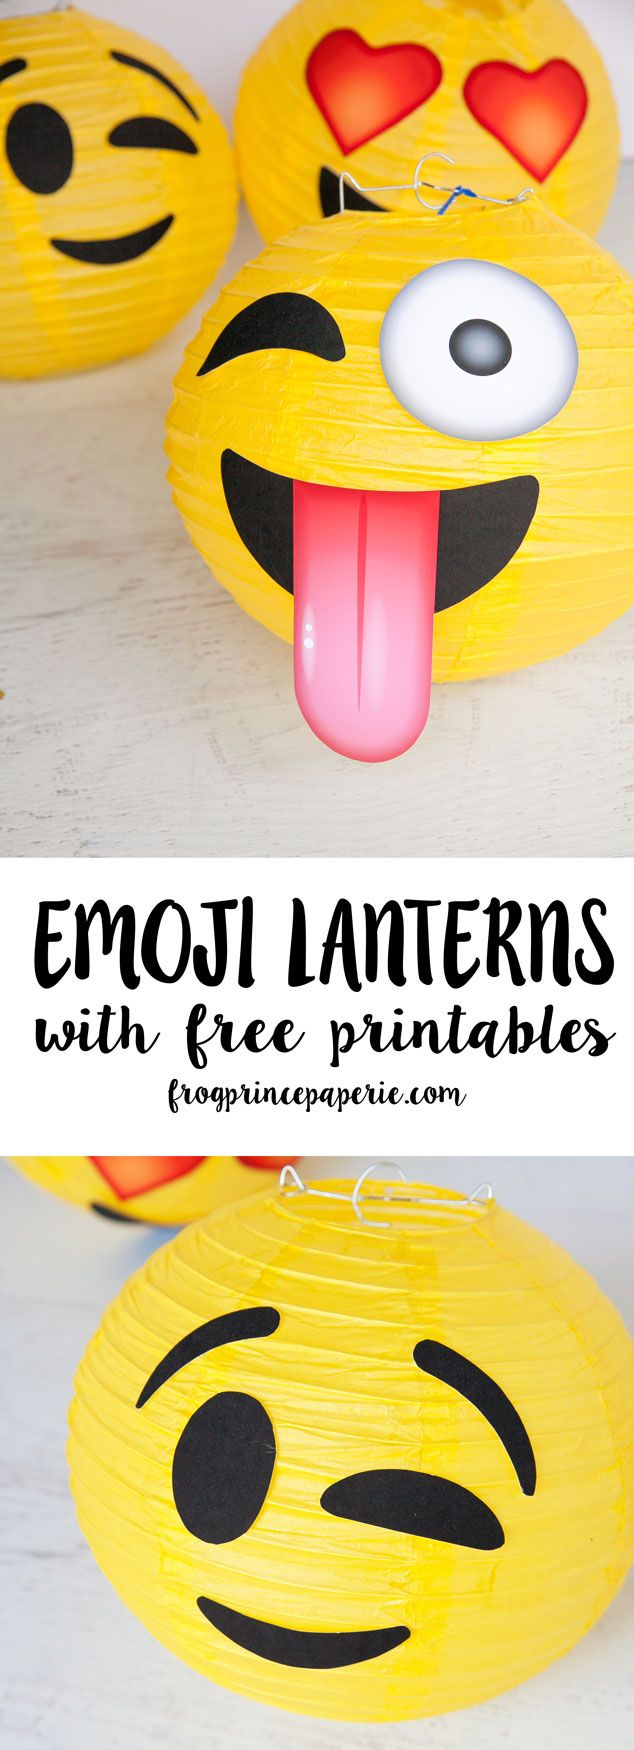 Emoji-lantern-with-free-printables Party ideas